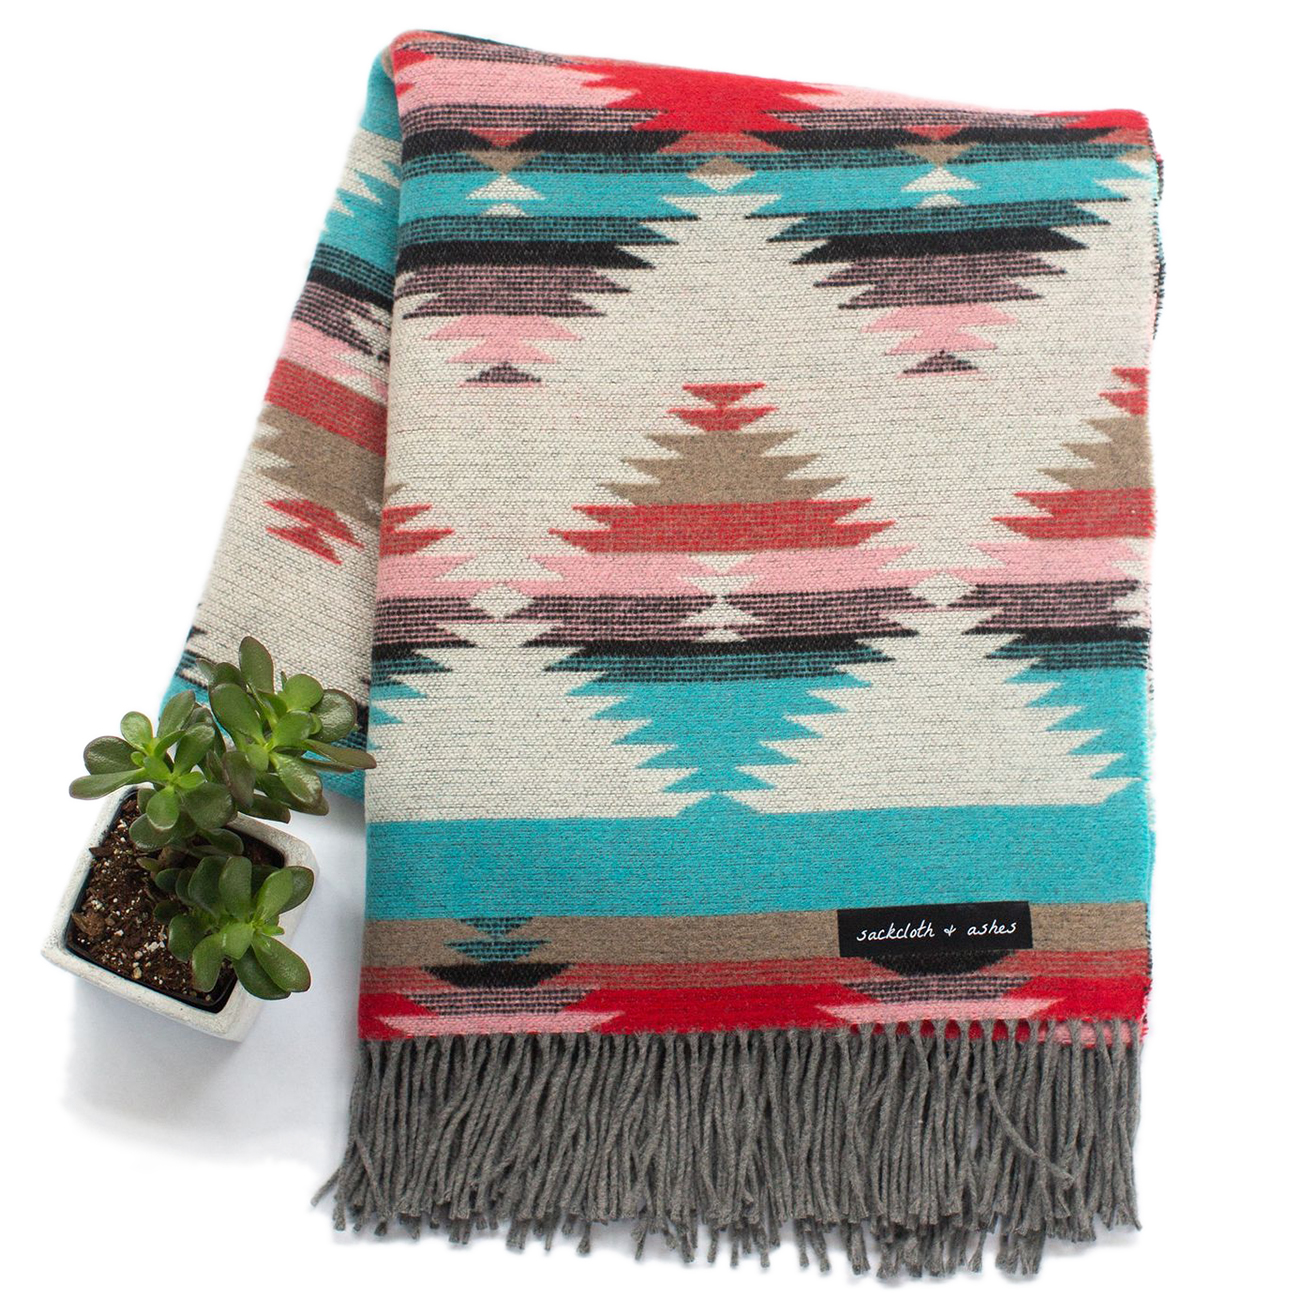 Gifts that give back - Sackcloth + Ashes Mojave Turquoise blanket